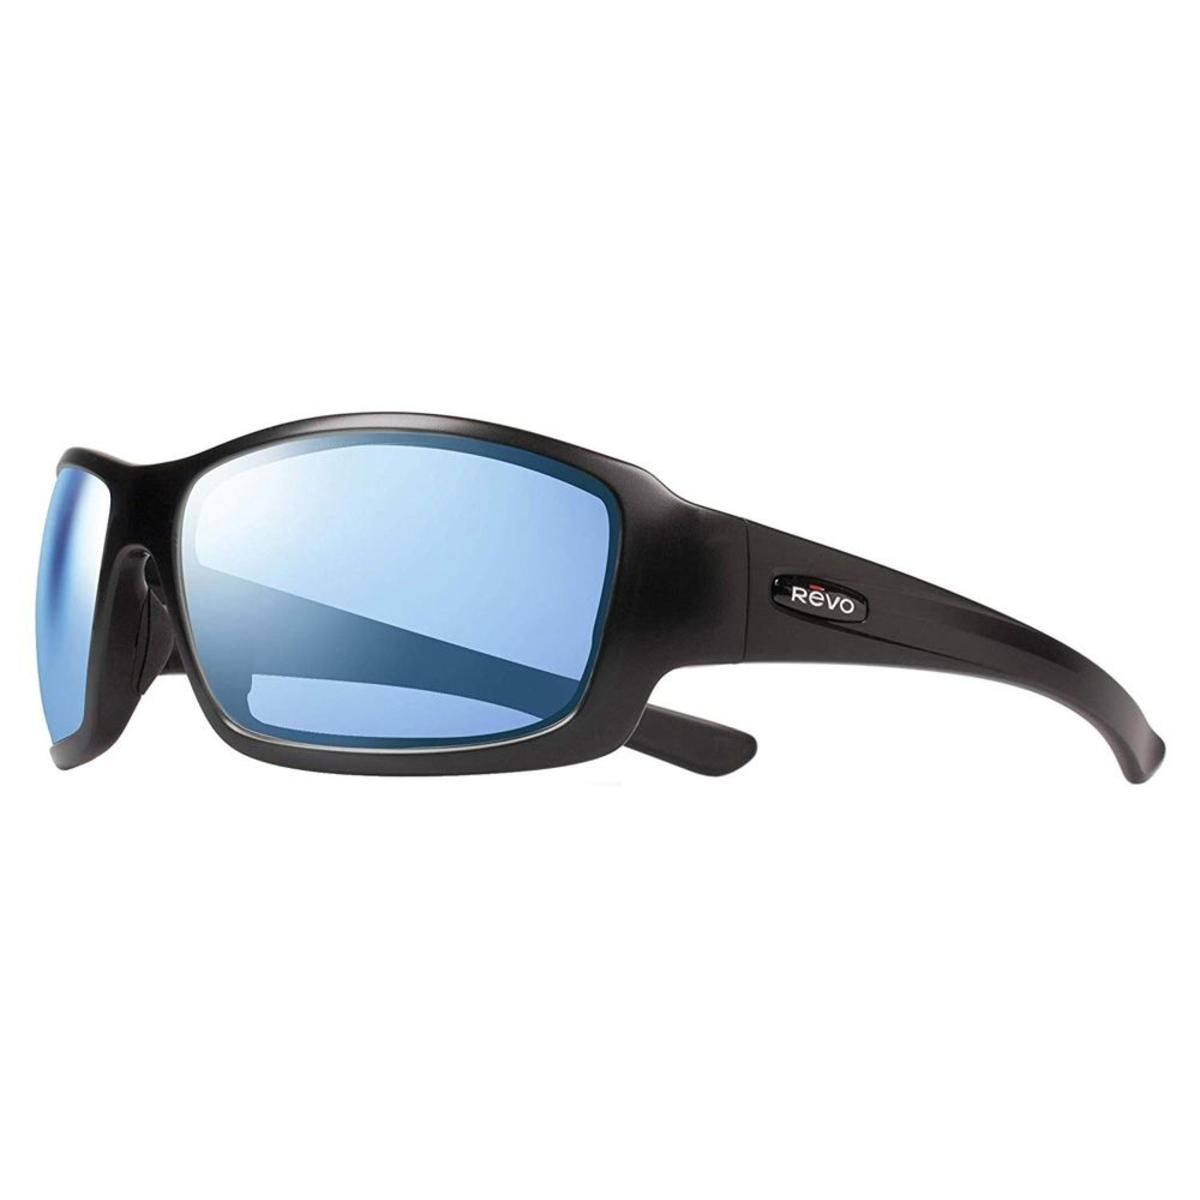 03668ca35dc Revo Men s Maverick Wraparound Sunglasses Blue Water Lens with Matte Black  Frame - The Warming Store